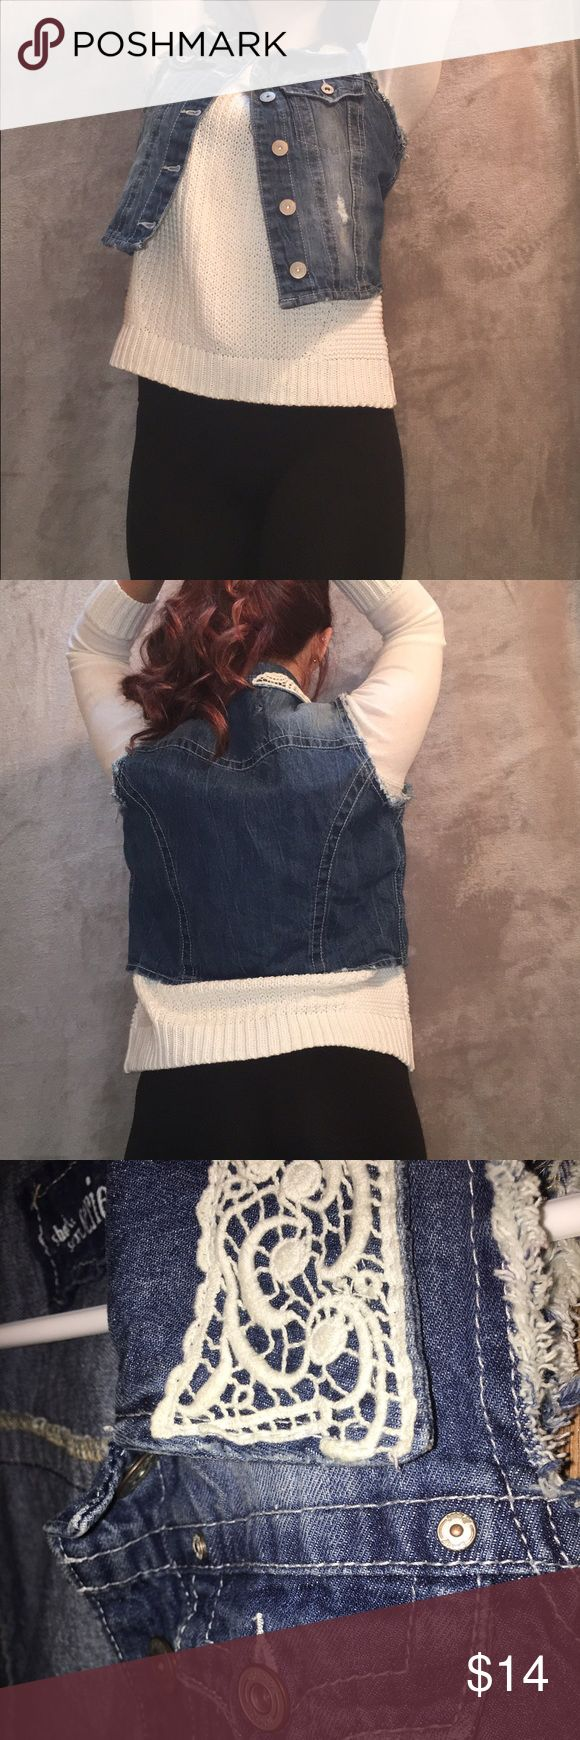 Sleeveless Denim Jacket (cropped) ONLY THE JACKET IS INCLUDED IN THIS! only worn once to a concert. no damage, looks brand new. has white lace all throughout the collar. very thick denim material! series Jackets & Coats Jean Jackets